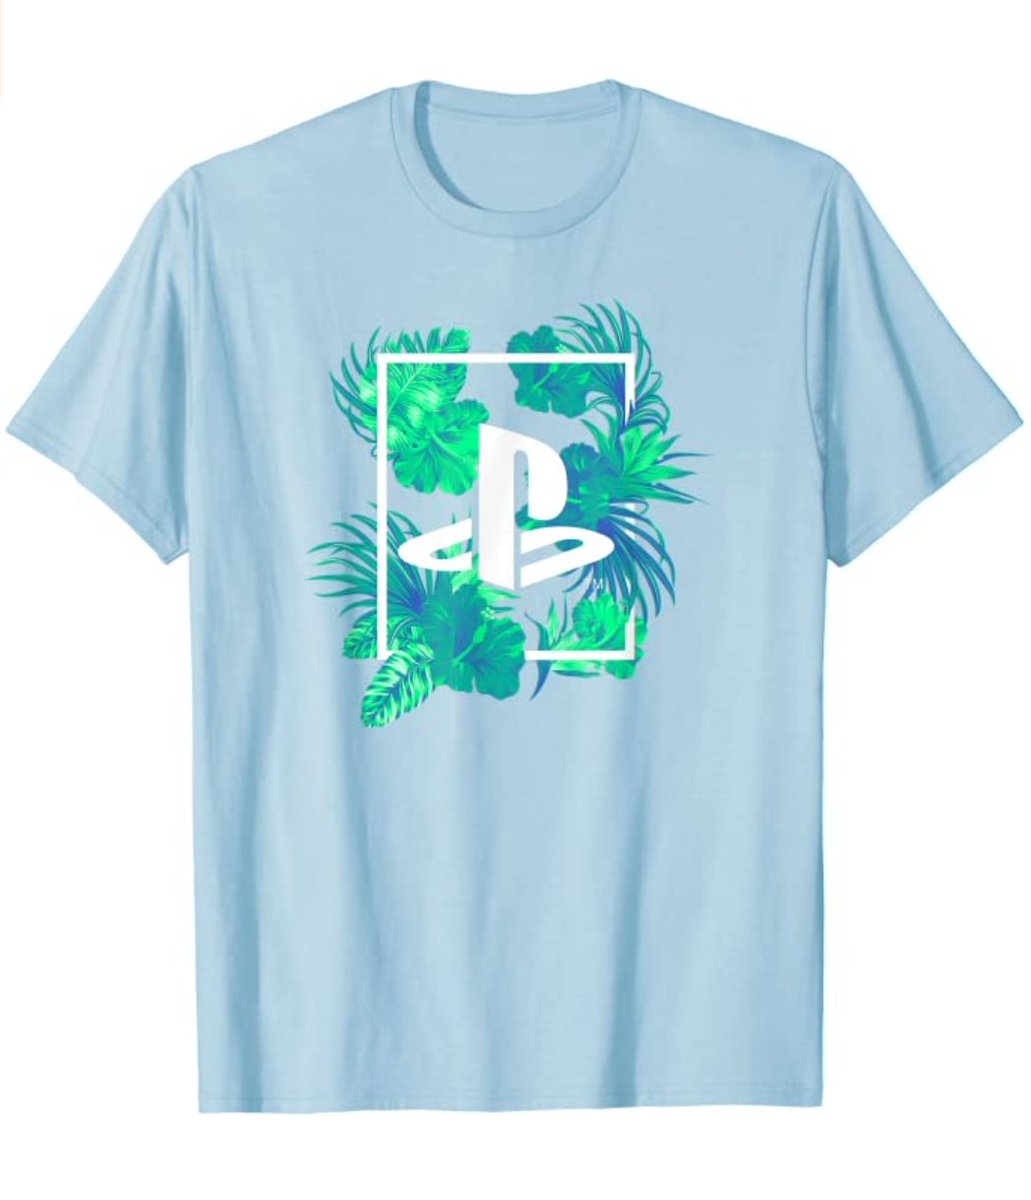 PlayStation Jungle T-Shirt  Officially Licensed $21.99  Amazon